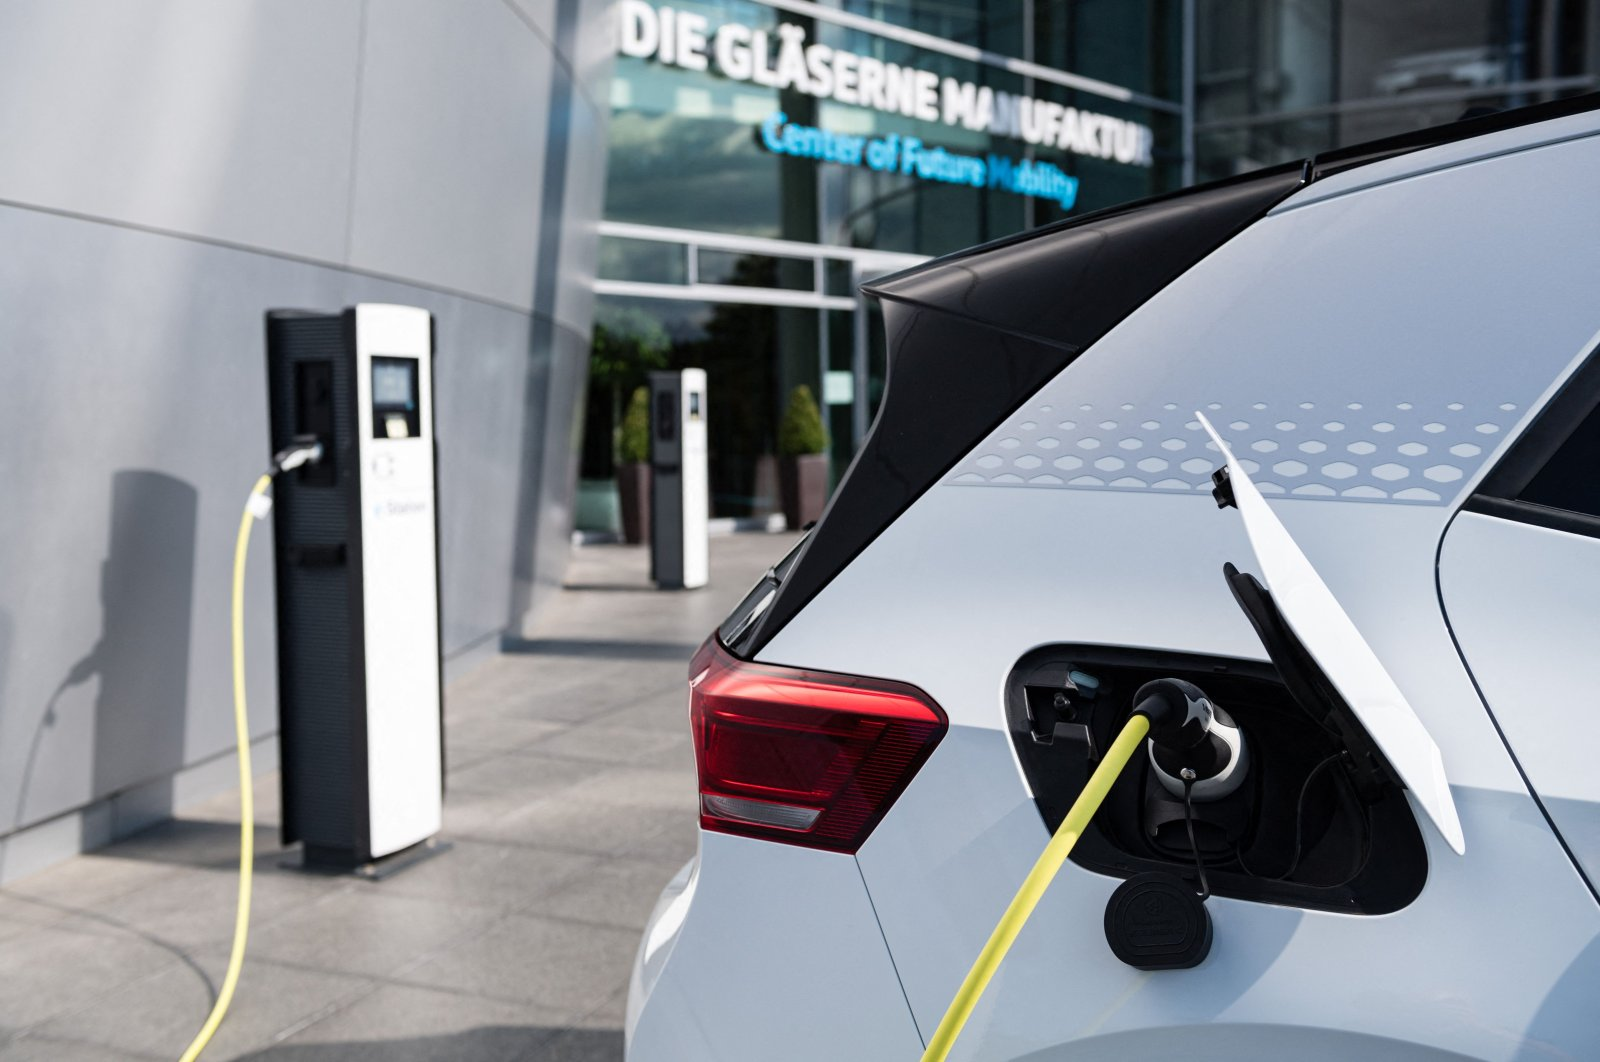 A Volkswagen ID.3 electric car being charged in Dresden, Germany, Sept. 11, 2020. (AFP Photo)